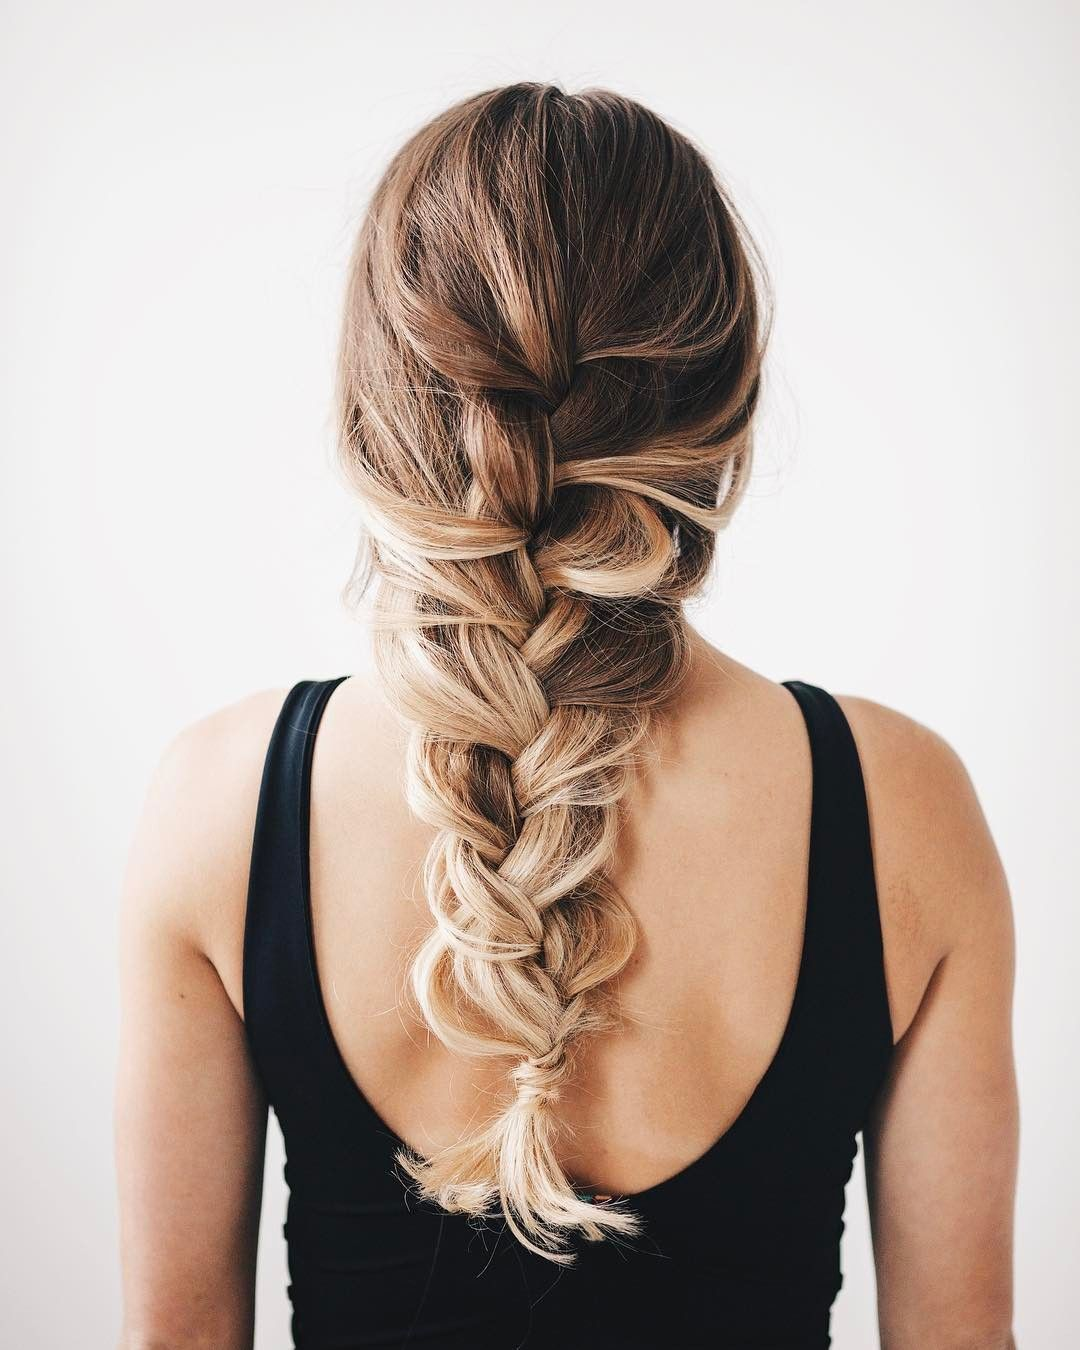 loose braid | Beauty Inspo | Hair, Loose braids, Bad hair day